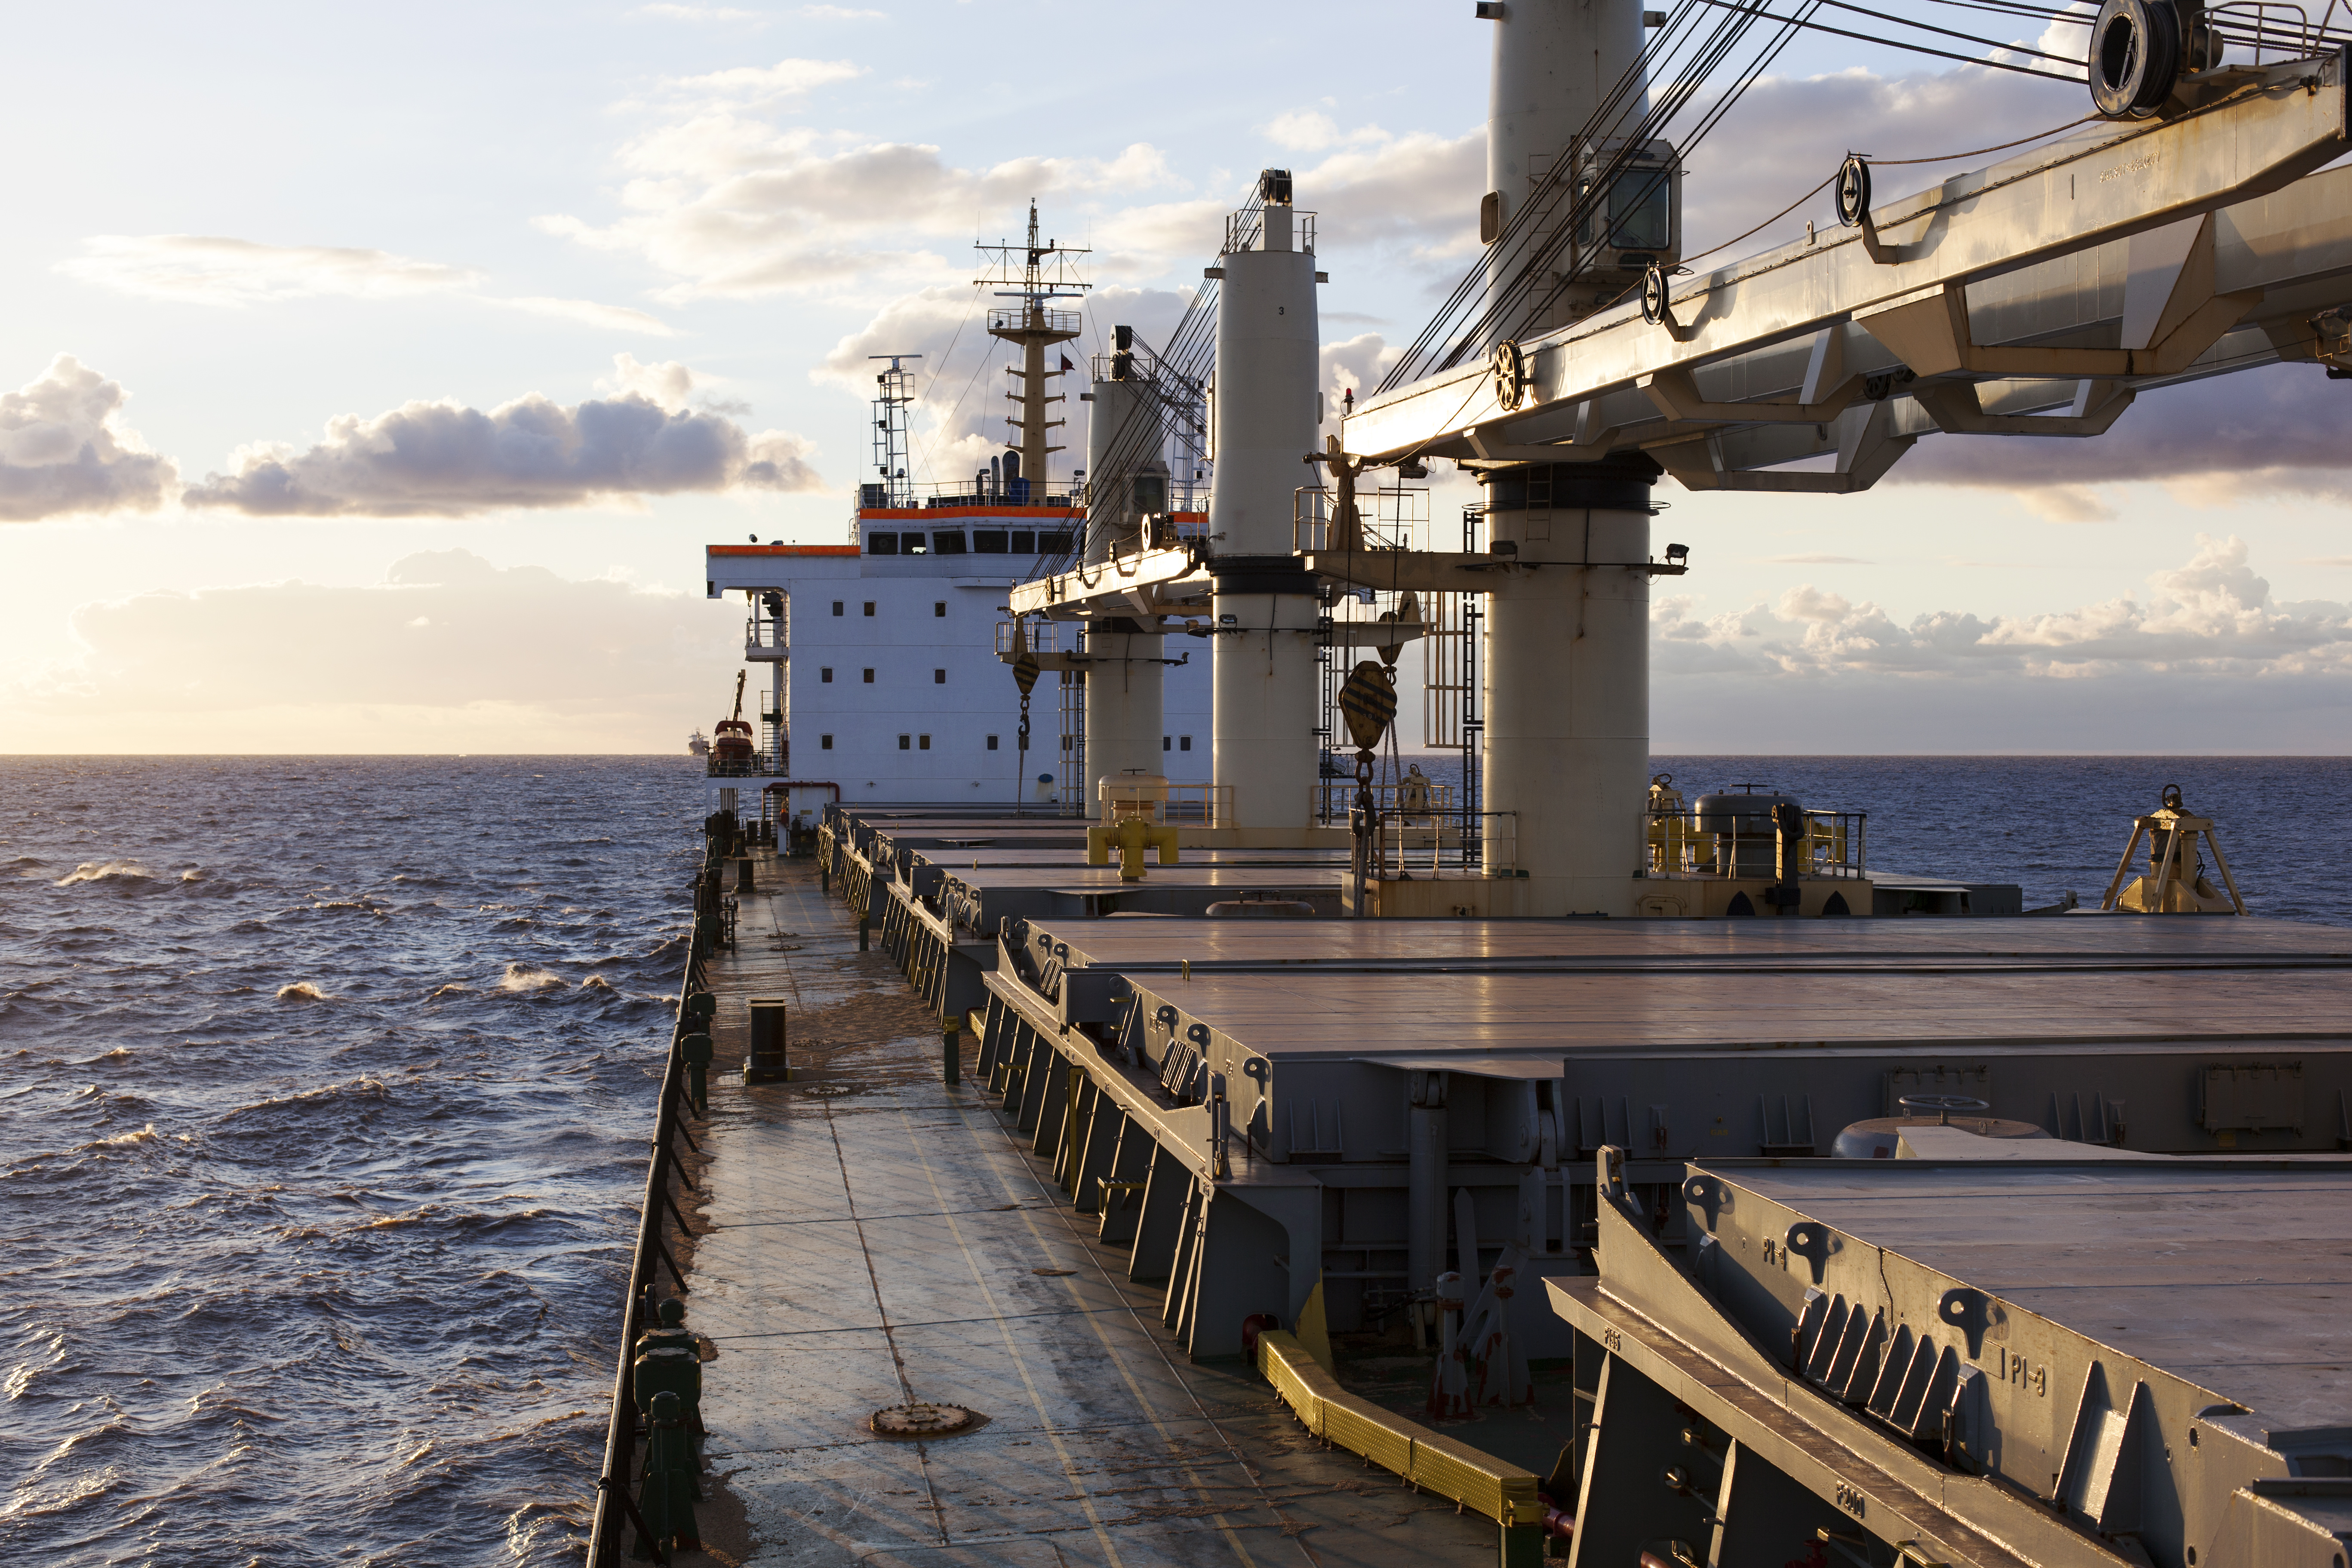 Complete Ship Inspection with Eddyfi Technologies Solutions